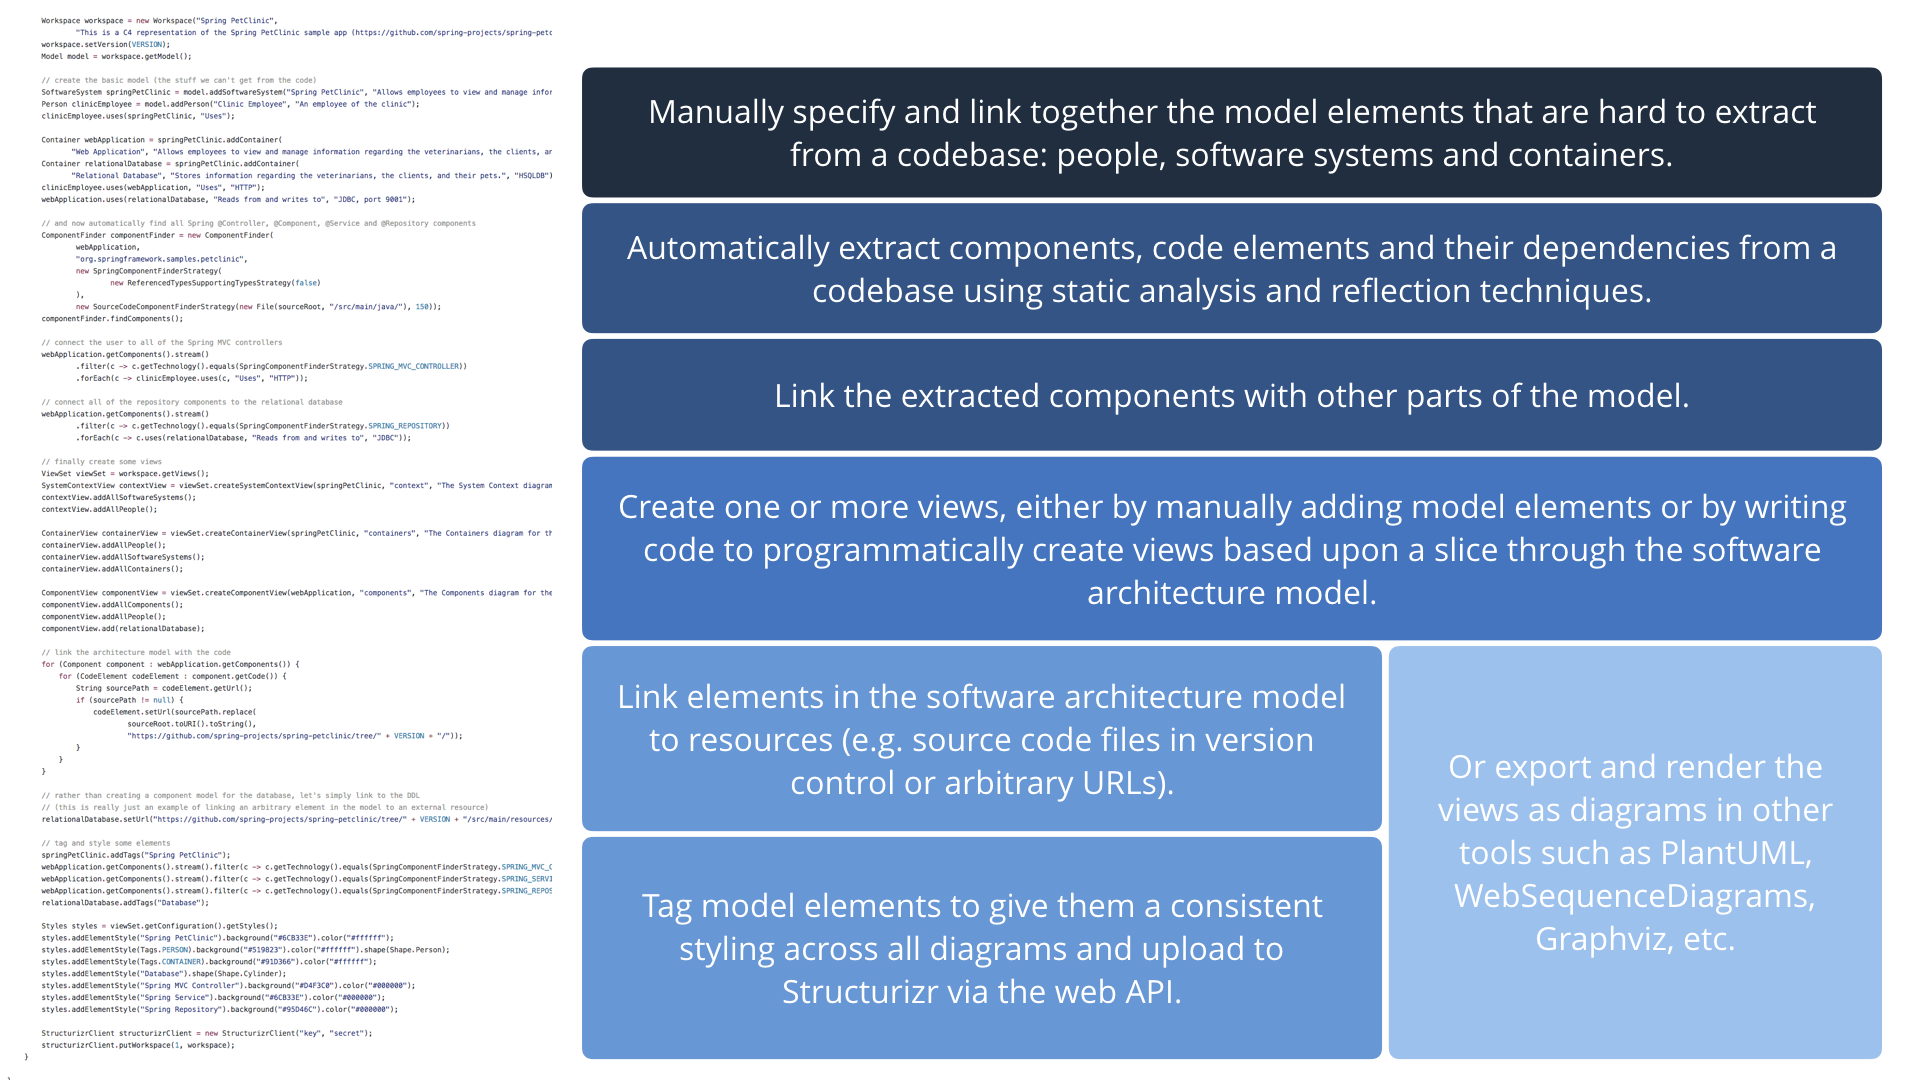 Why use code to create a software architecture model?